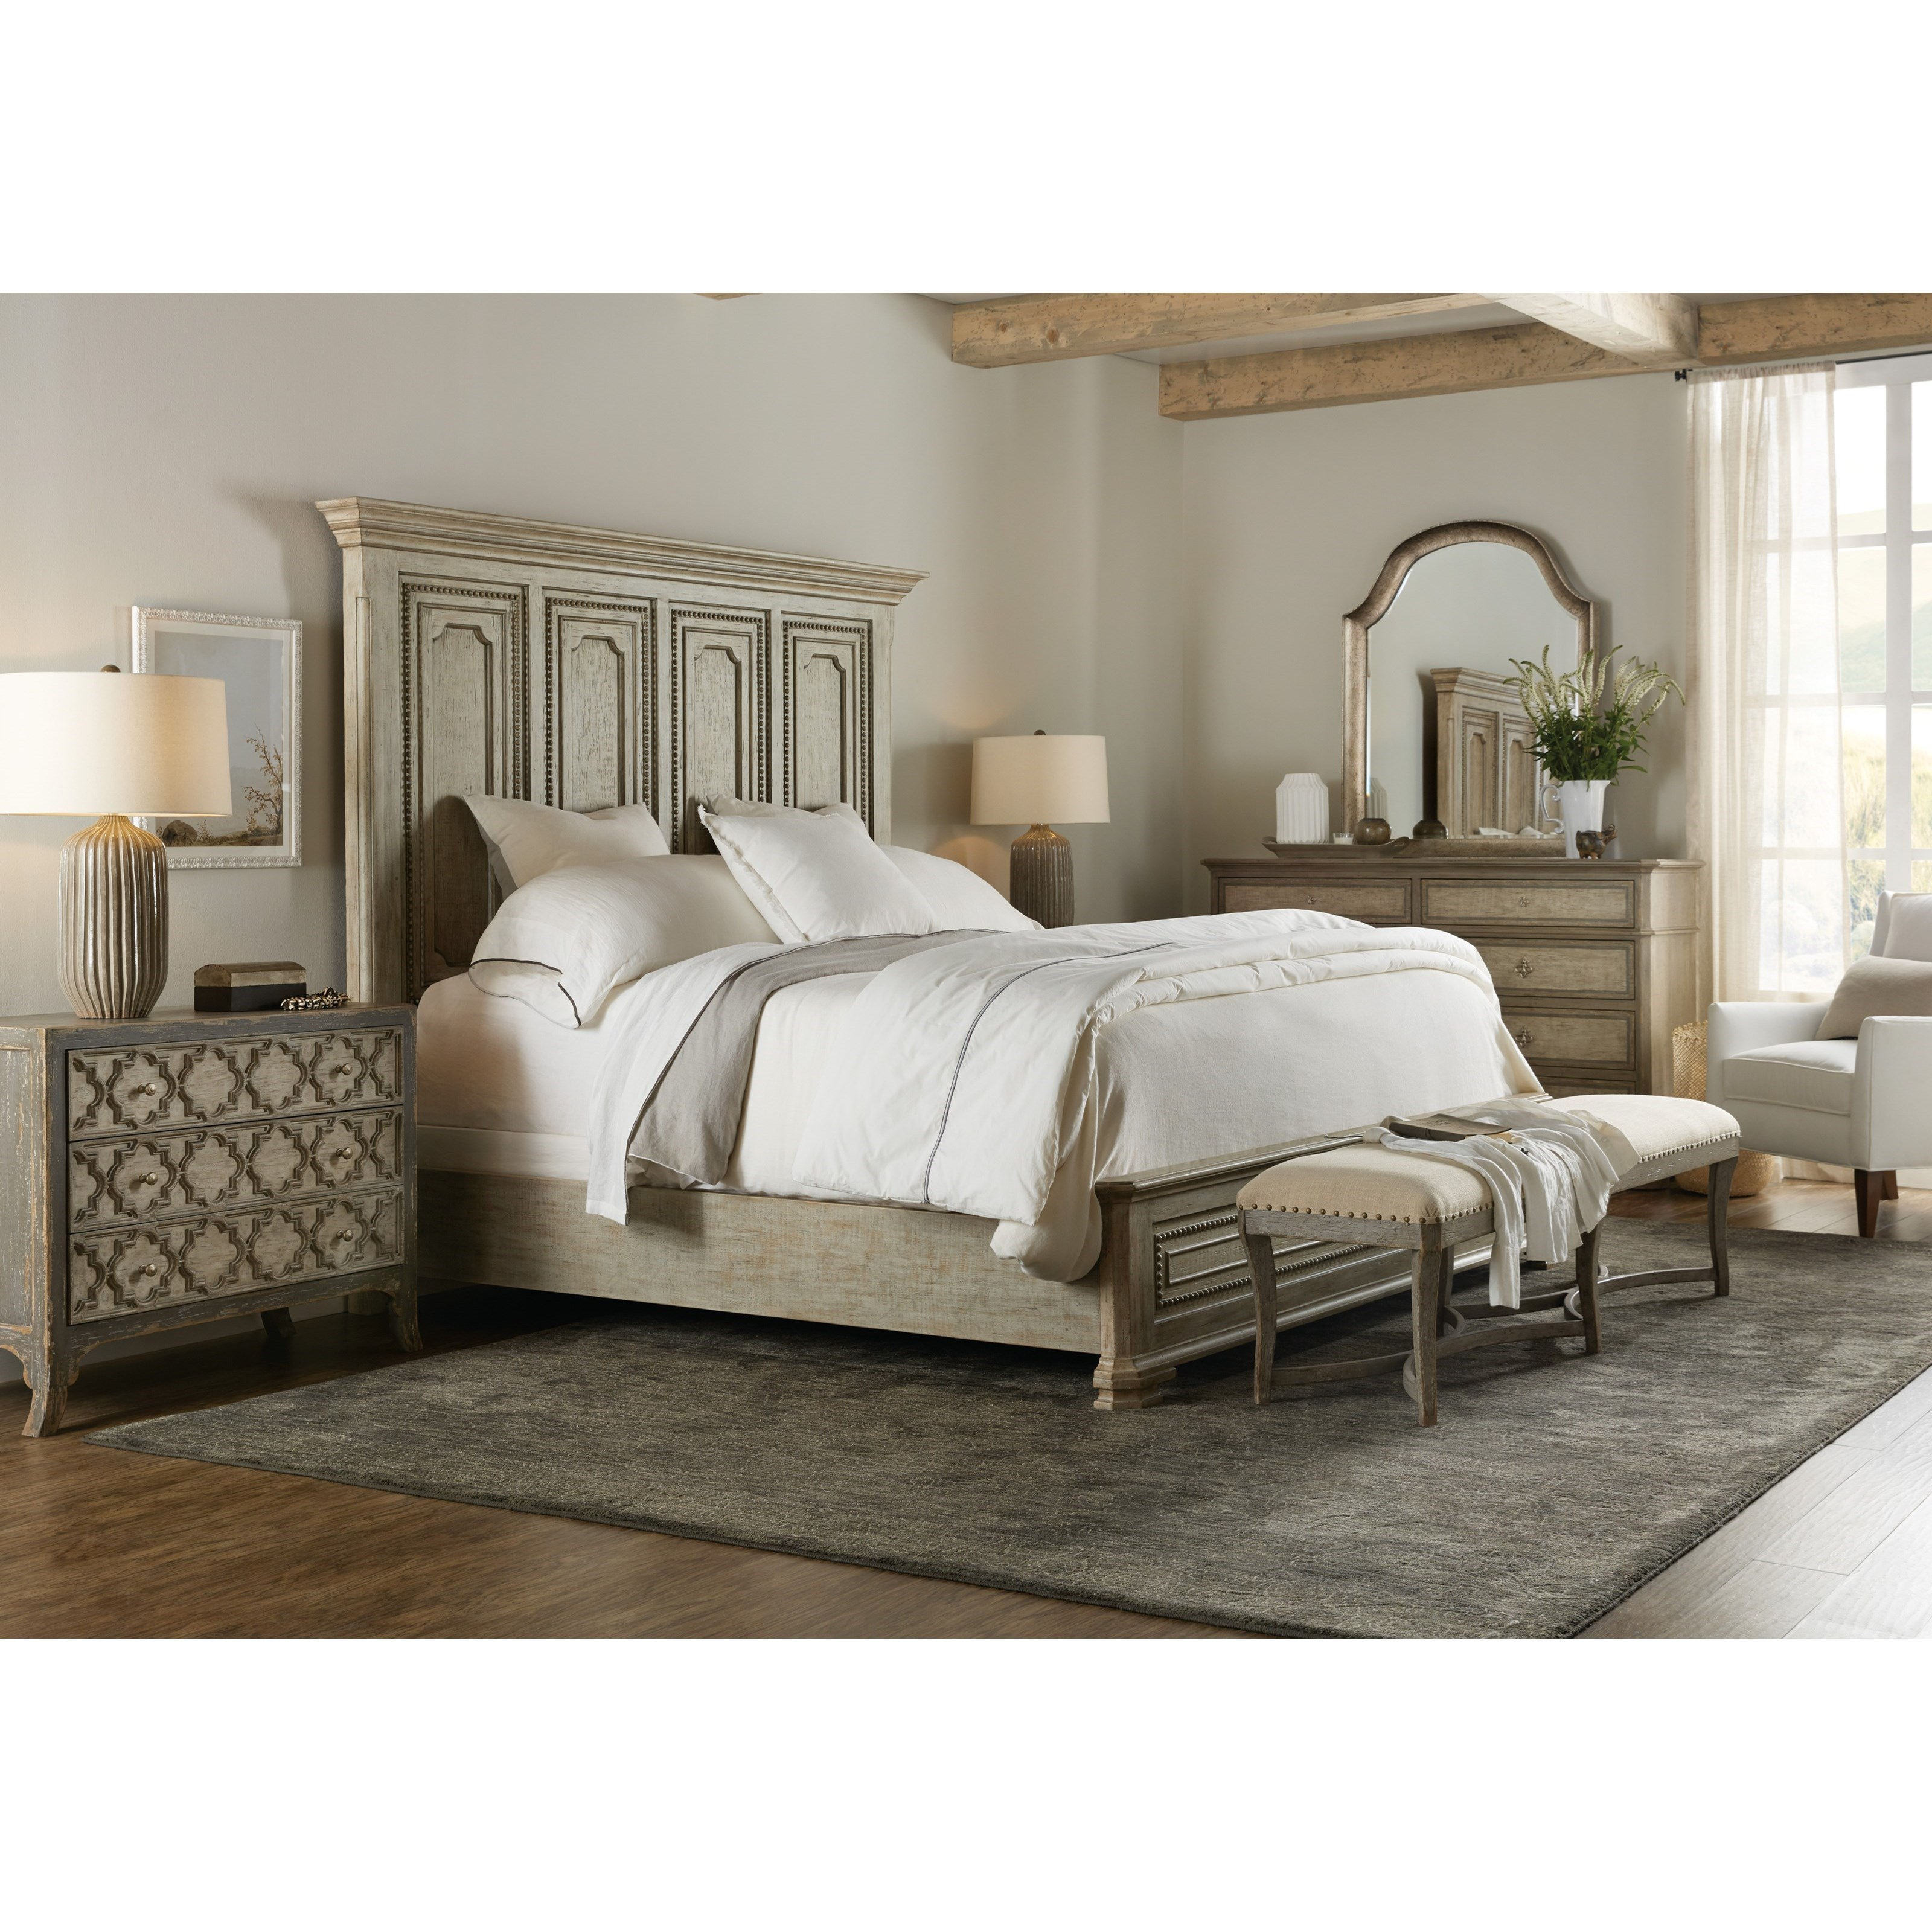 Alfresco King Bedroom Group by Hamilton Home at Sprintz Furniture